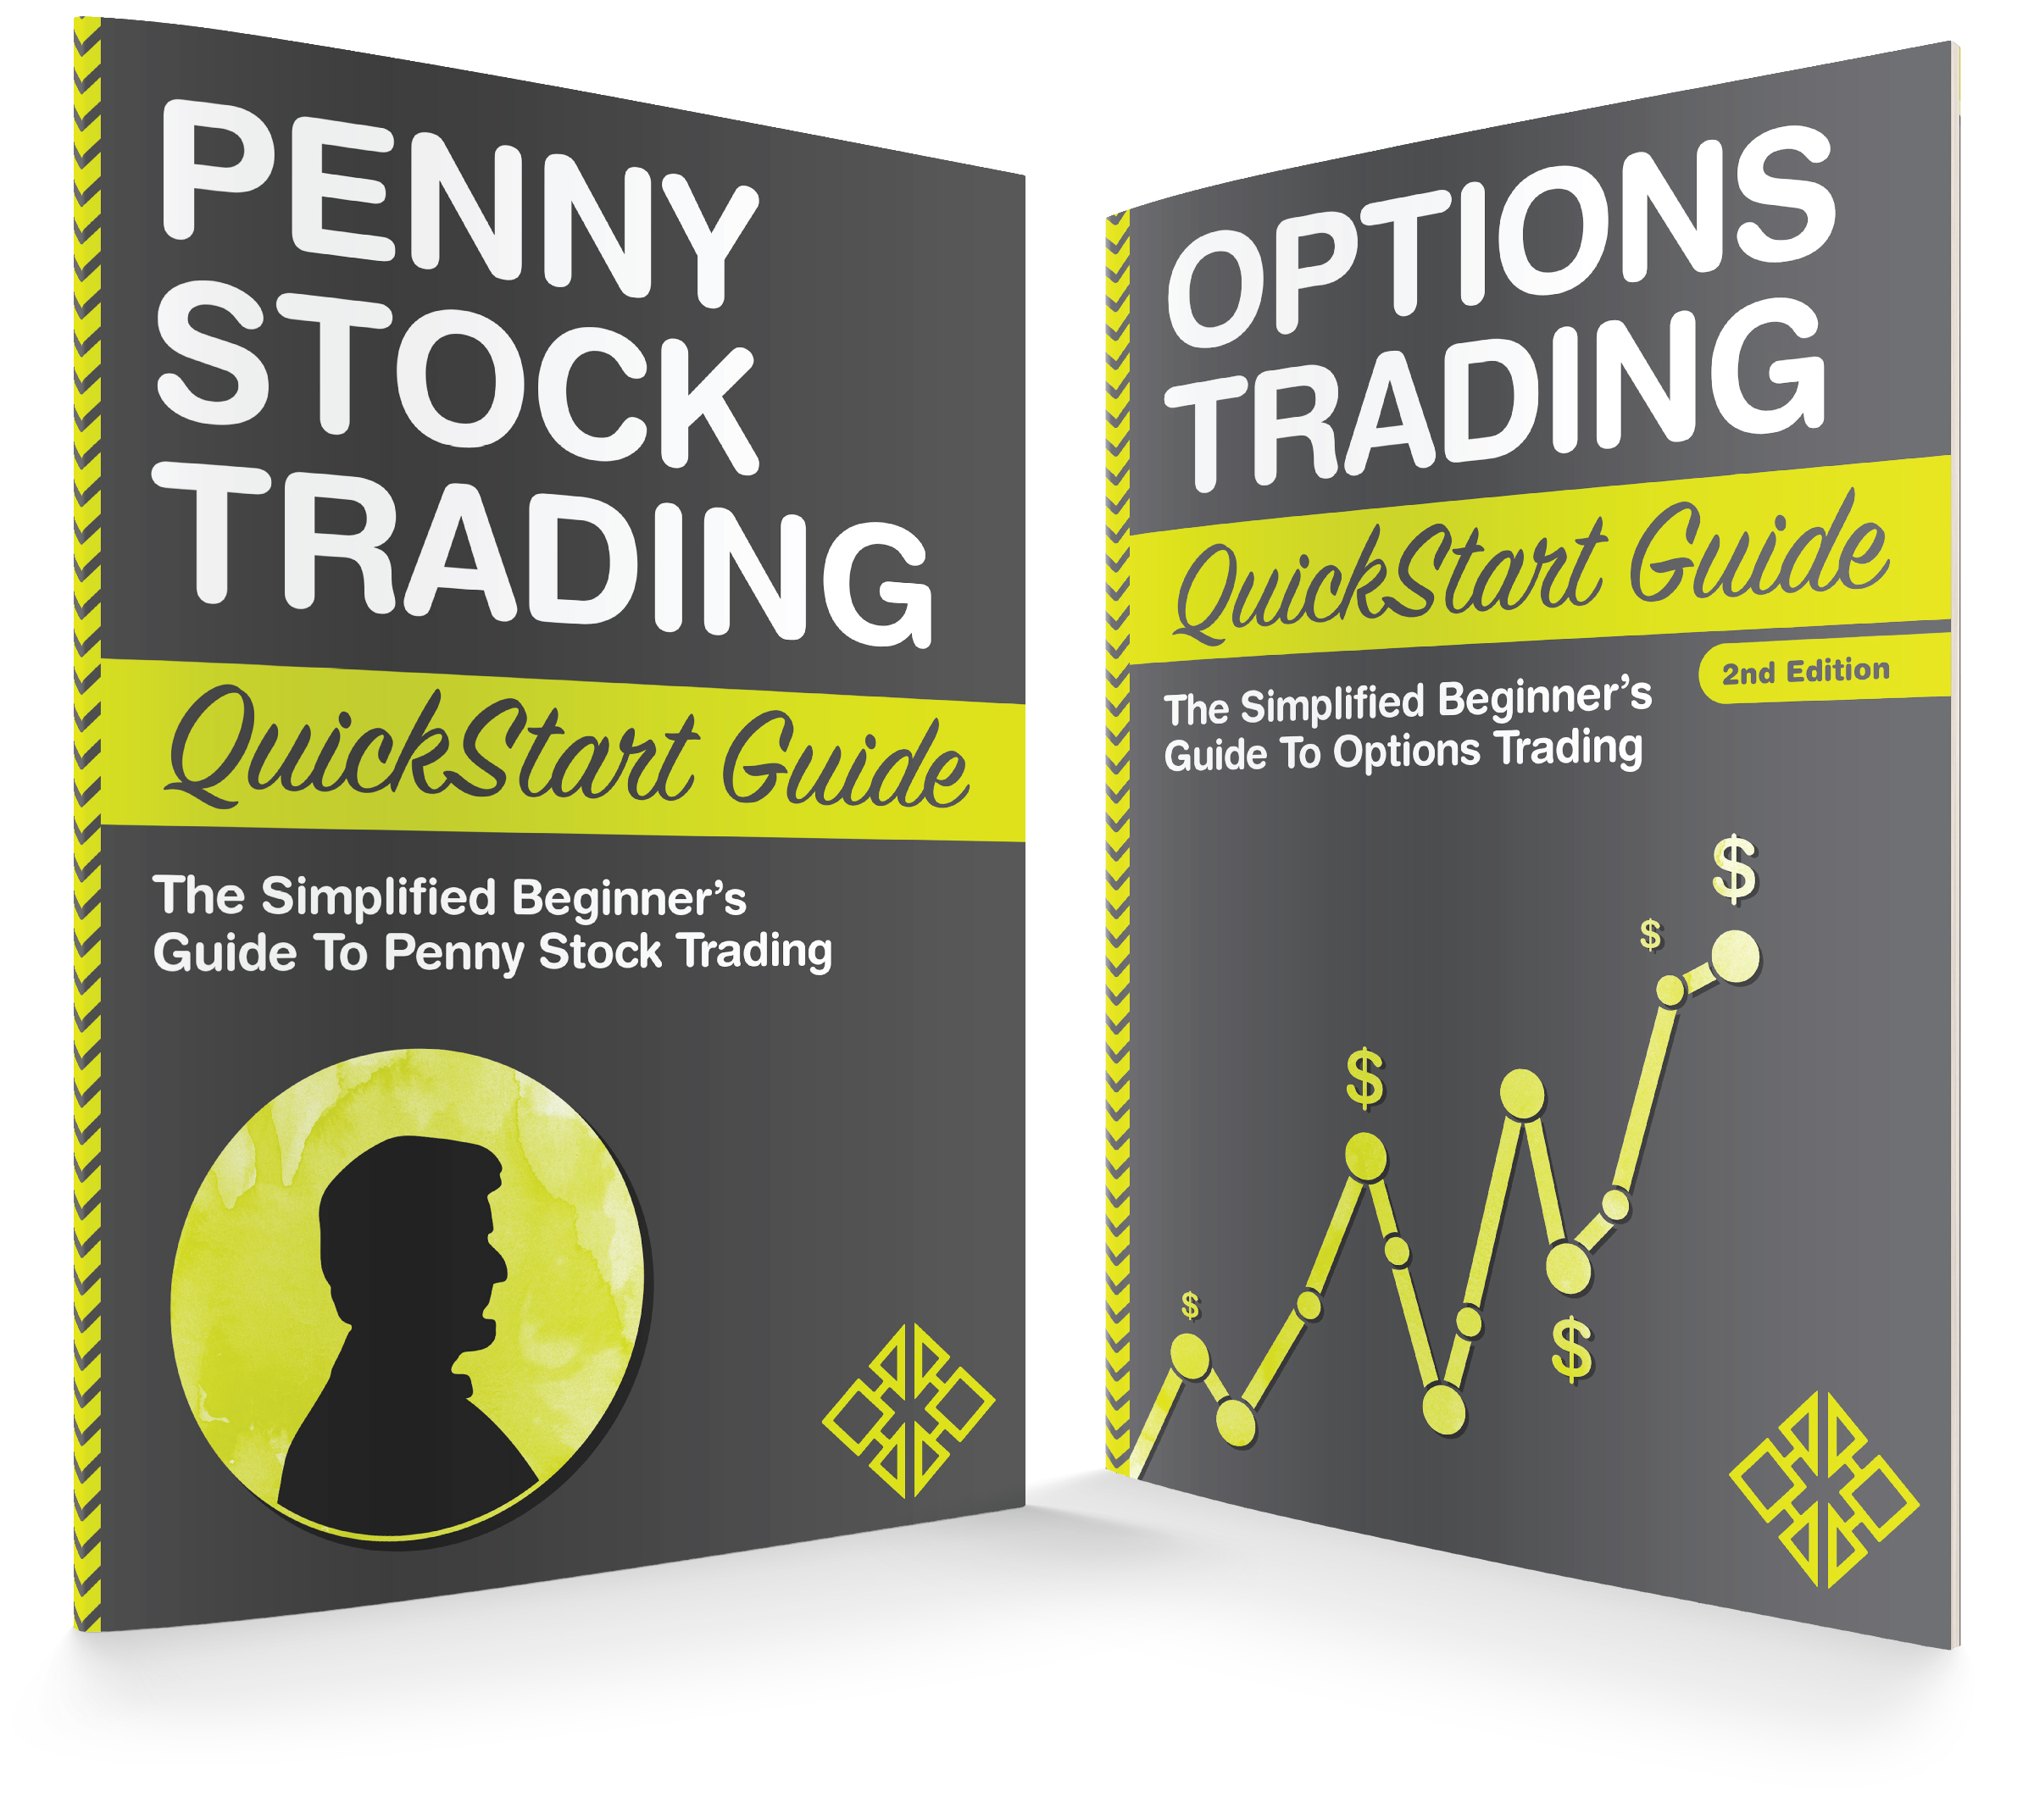 Penny stocks or options